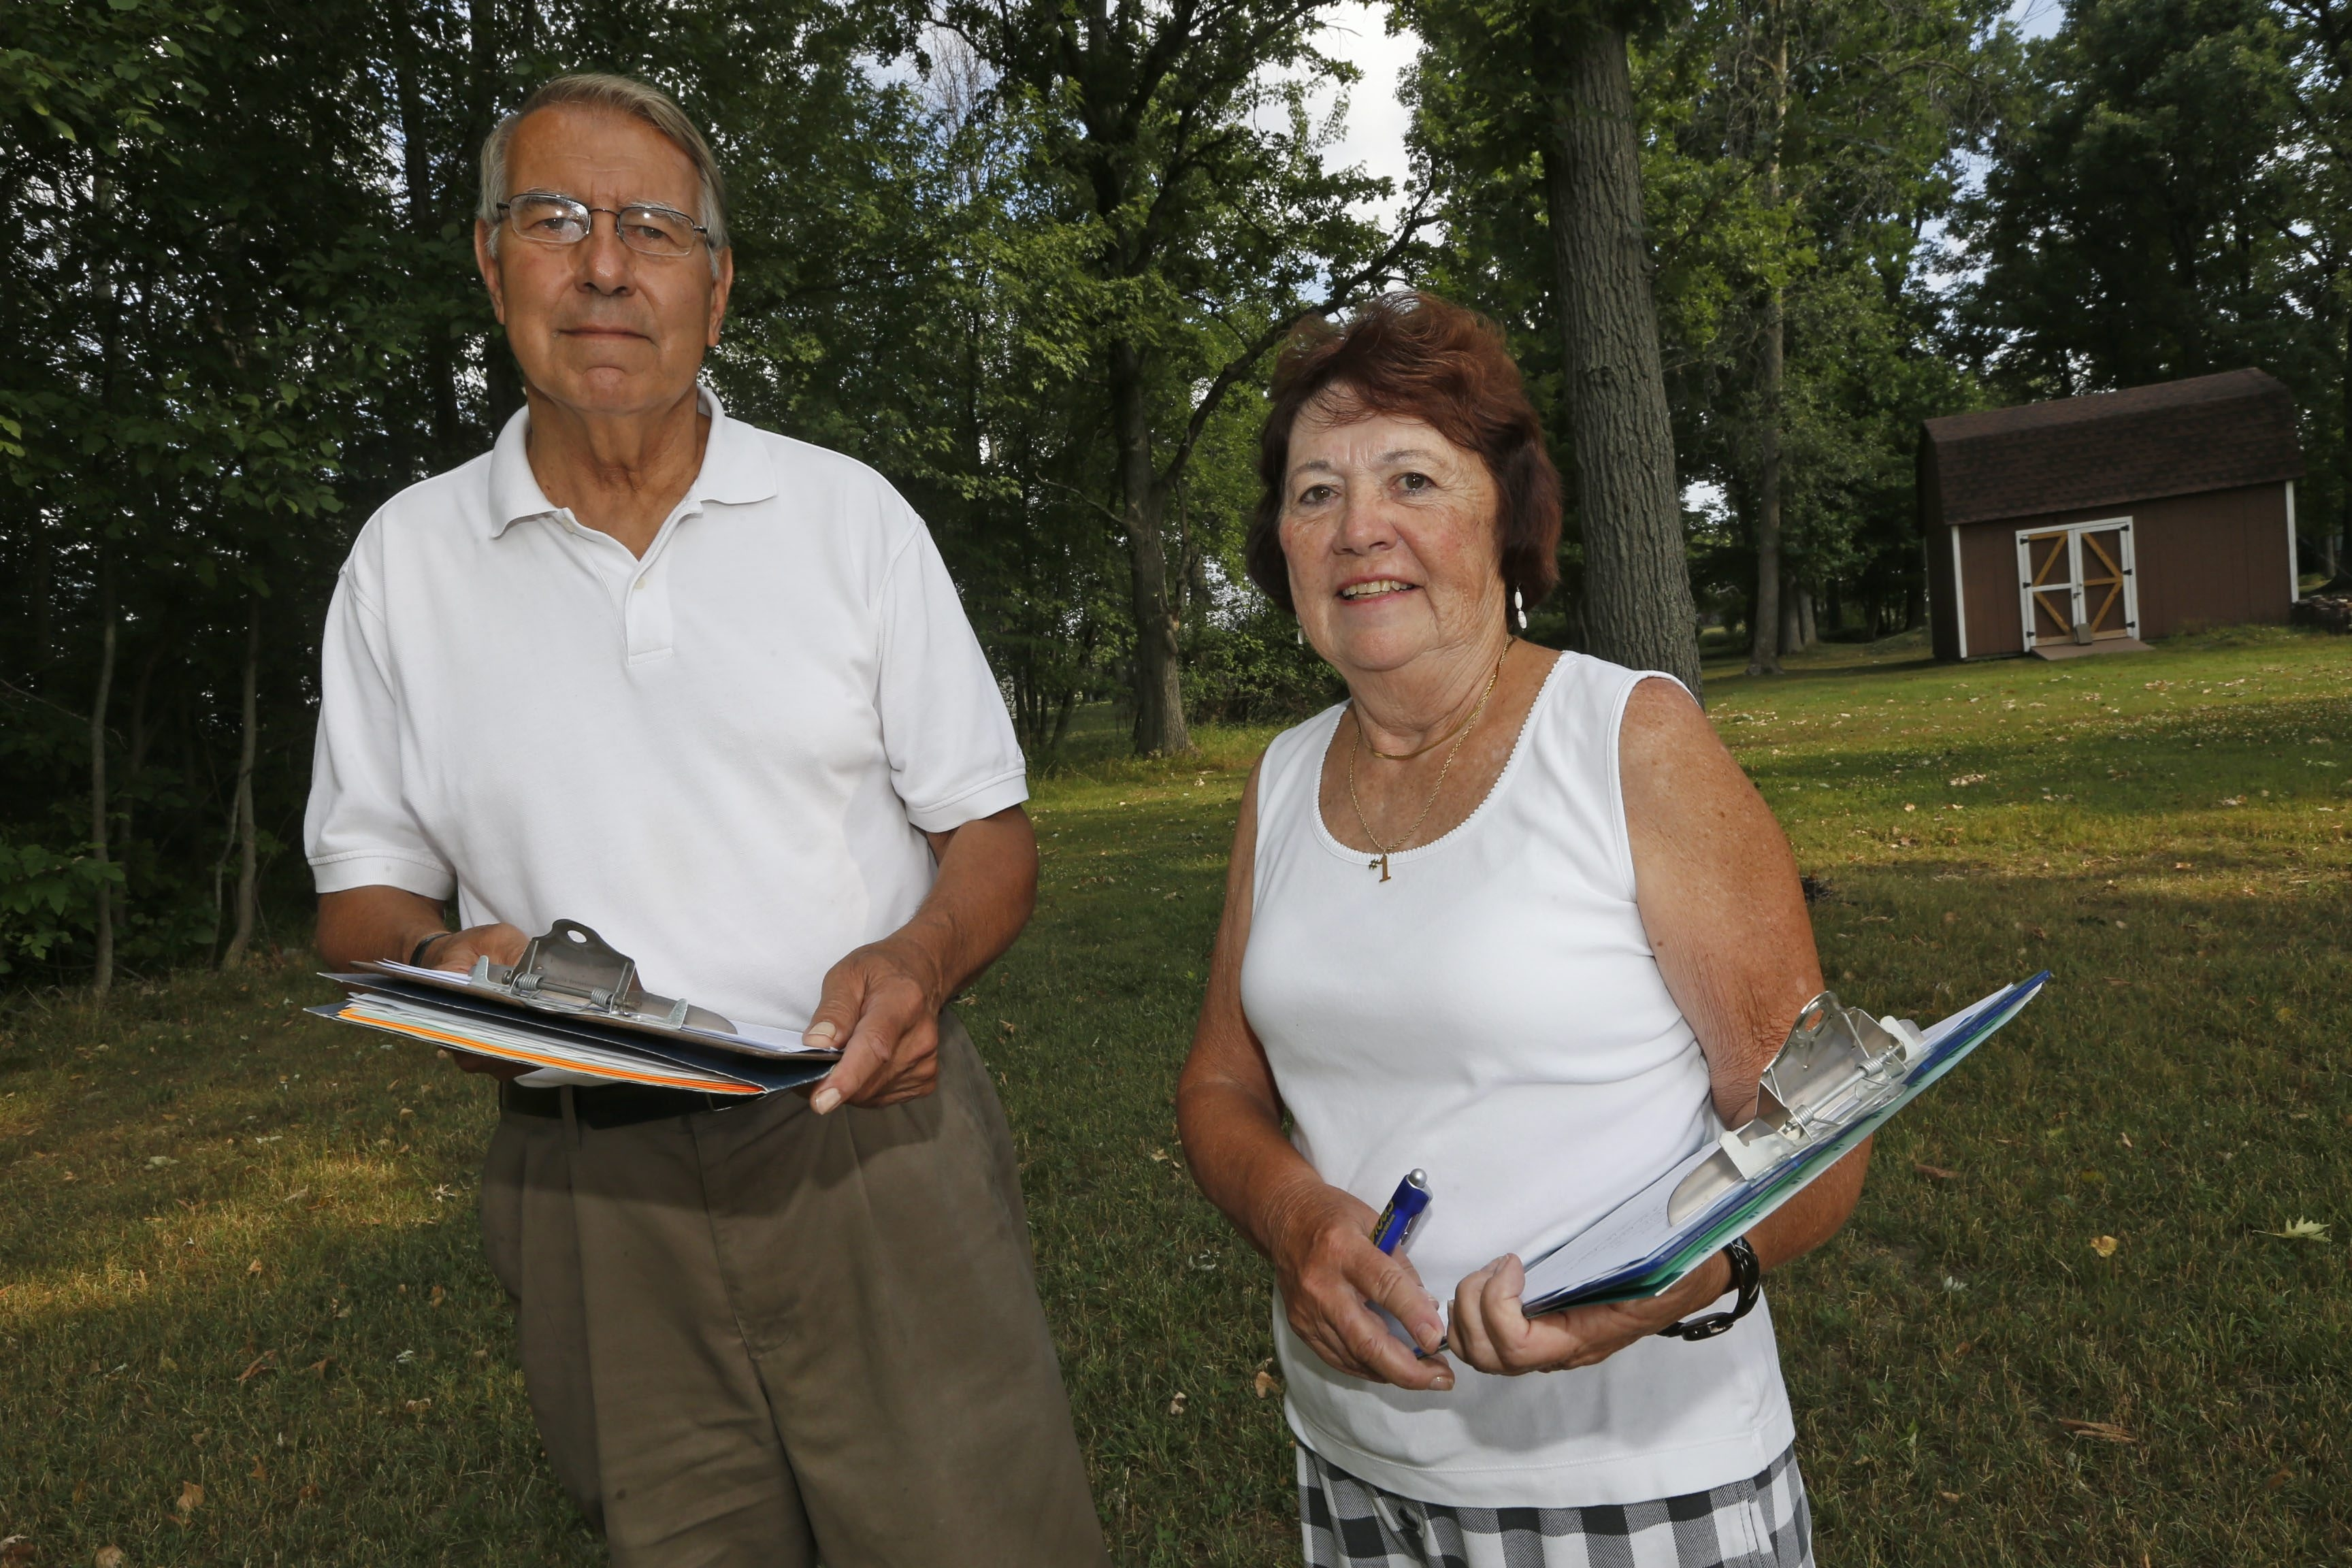 Joan Priebe and Irvine. G. Reinig II collect signatures on a petition to dissolve the Village of Depew on Friday, July 15, 2016. (Robert Kirkham/Buffalo News)